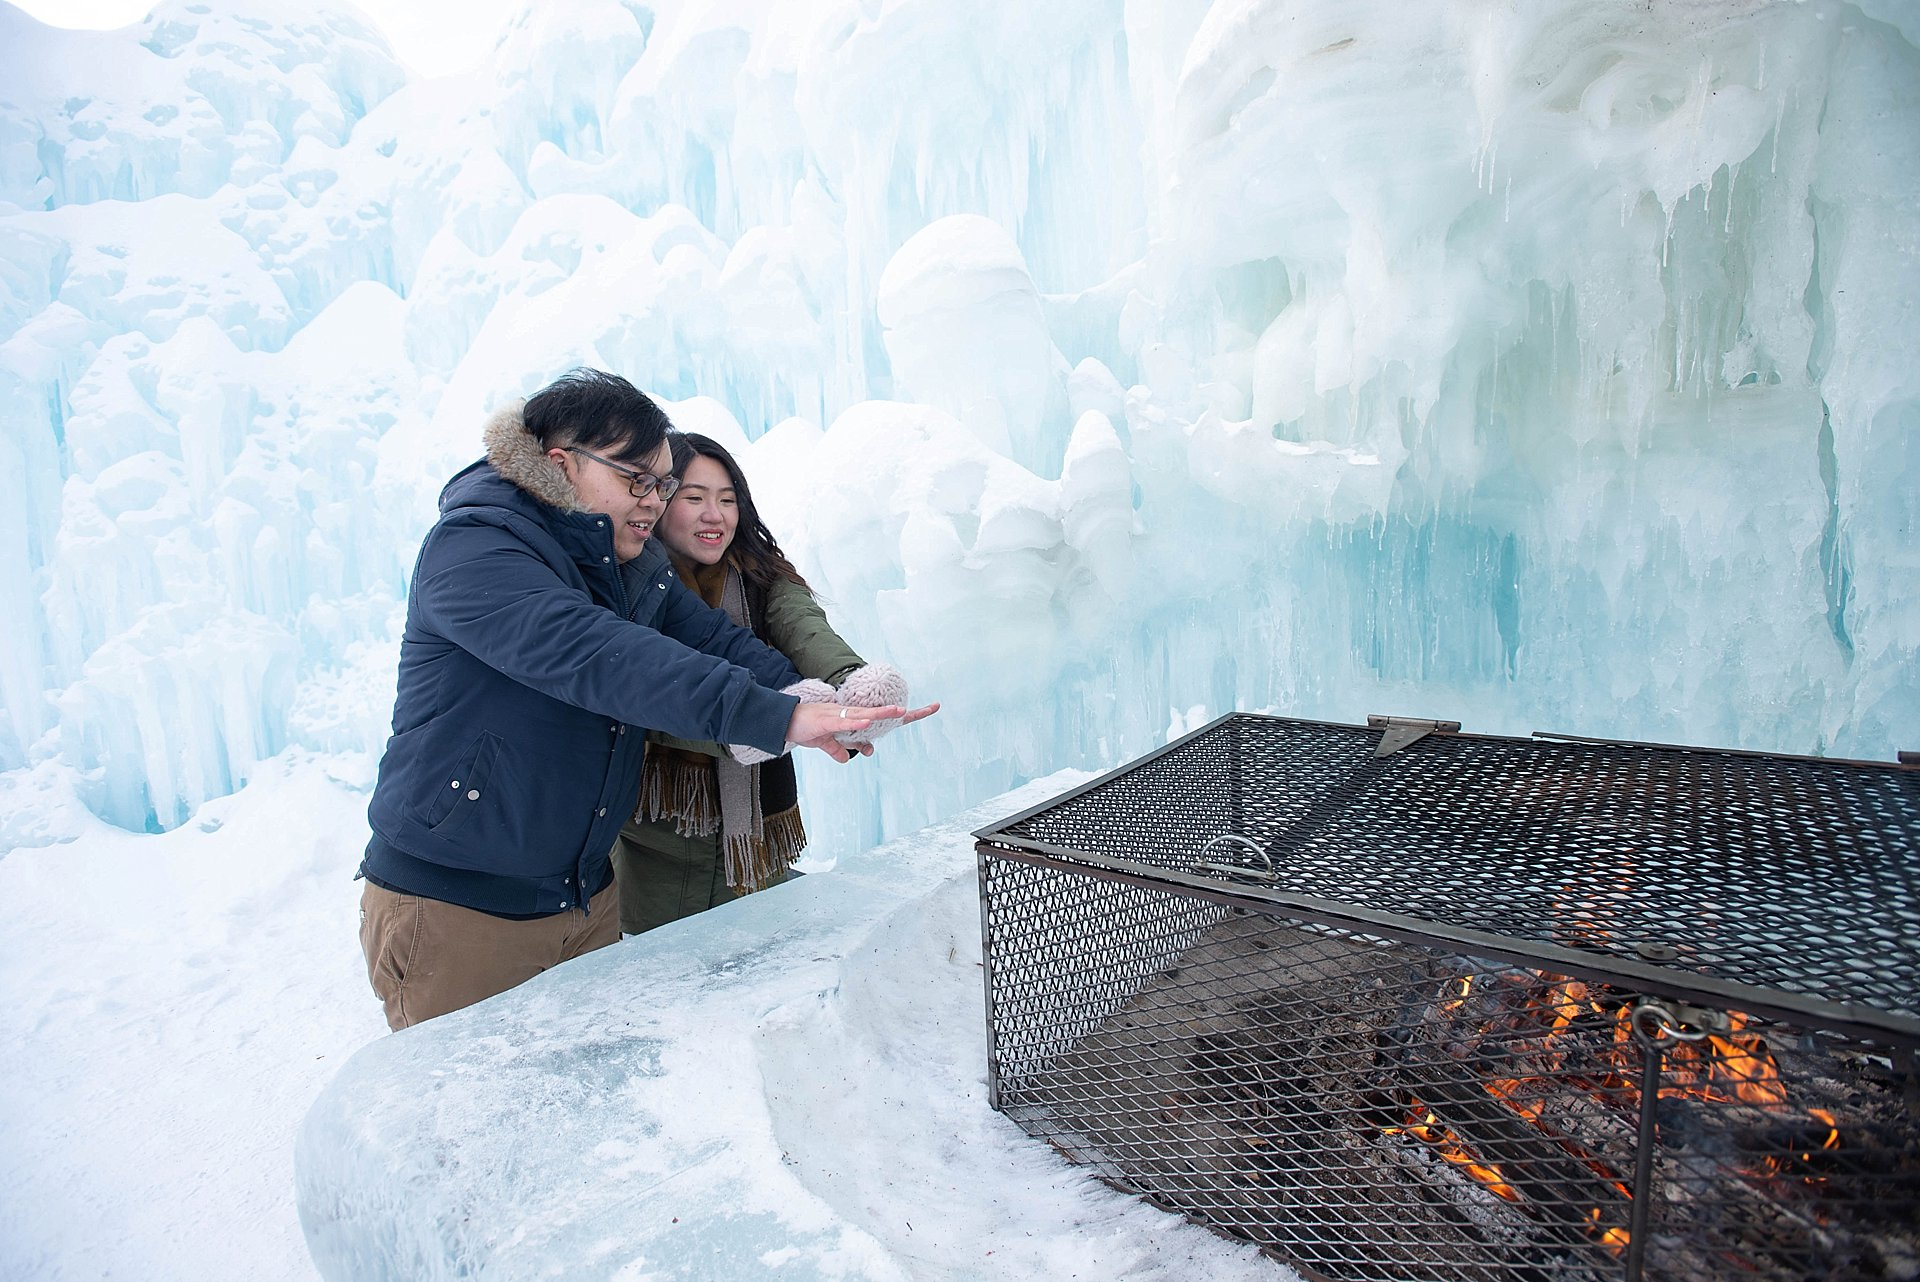 VJ-Ice-castles-engagement-photography_0011